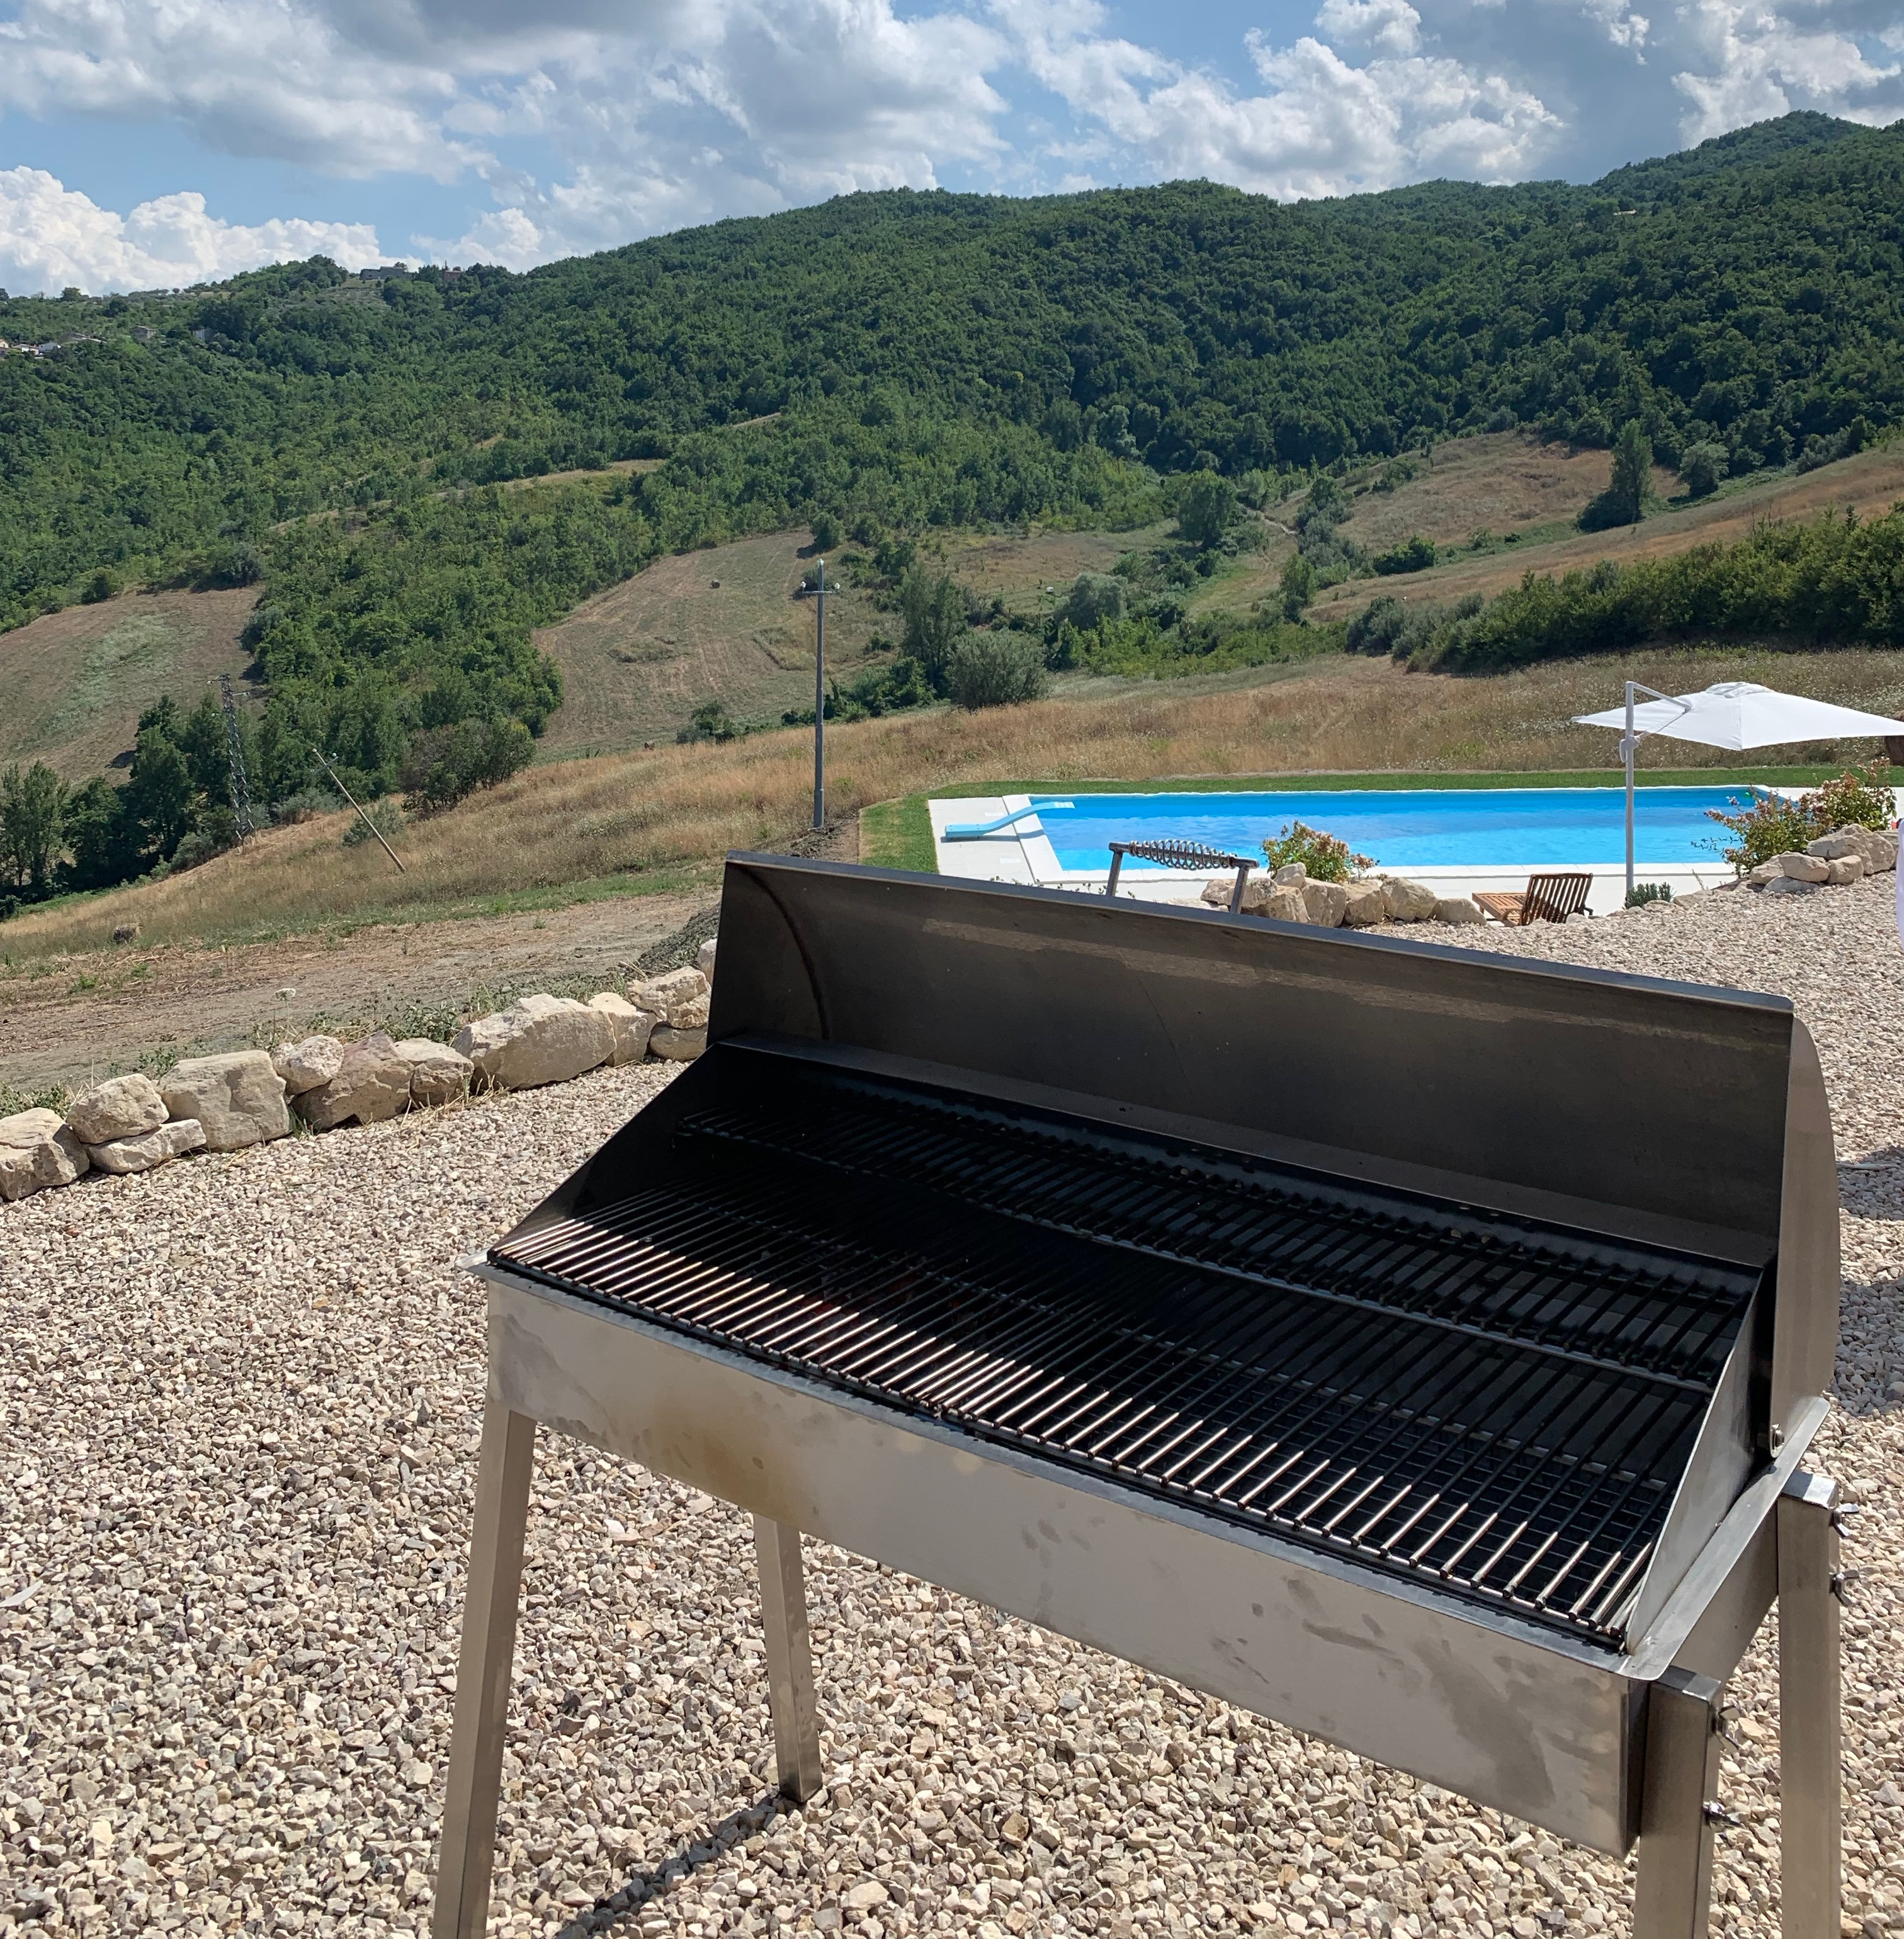 Que Fresco Stainless Steel Barbecues